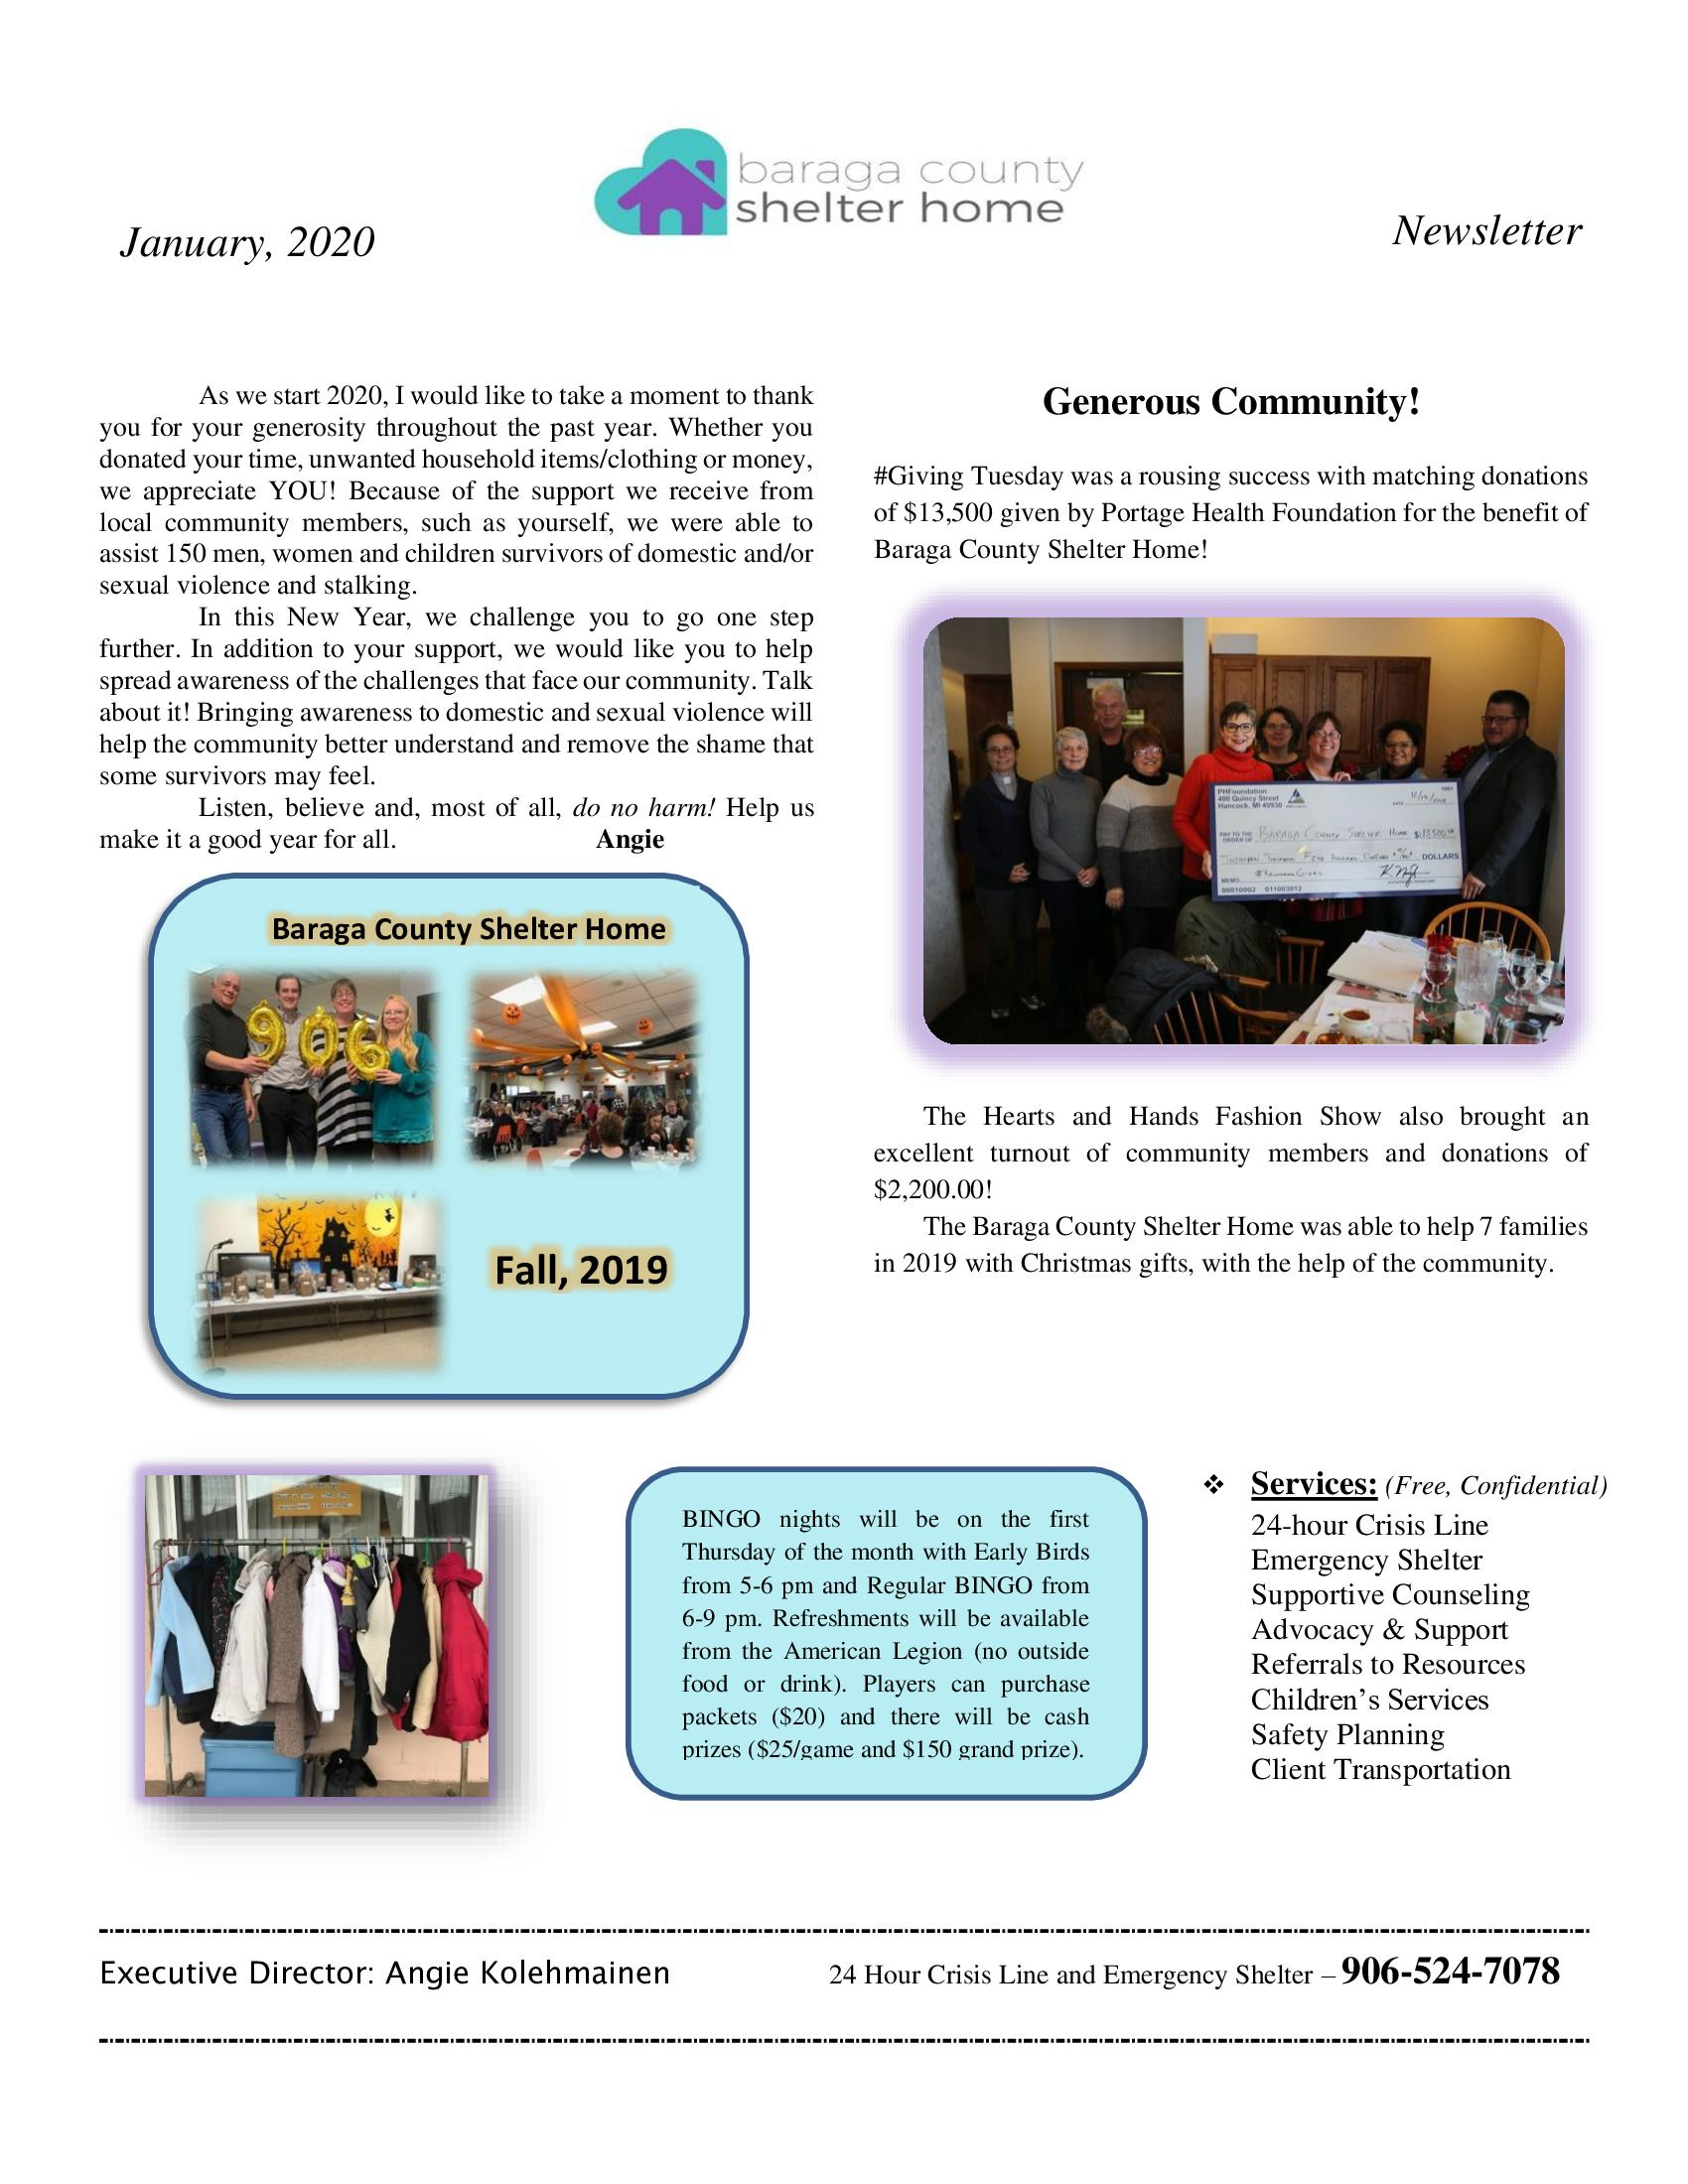 January Newsletter pg 1